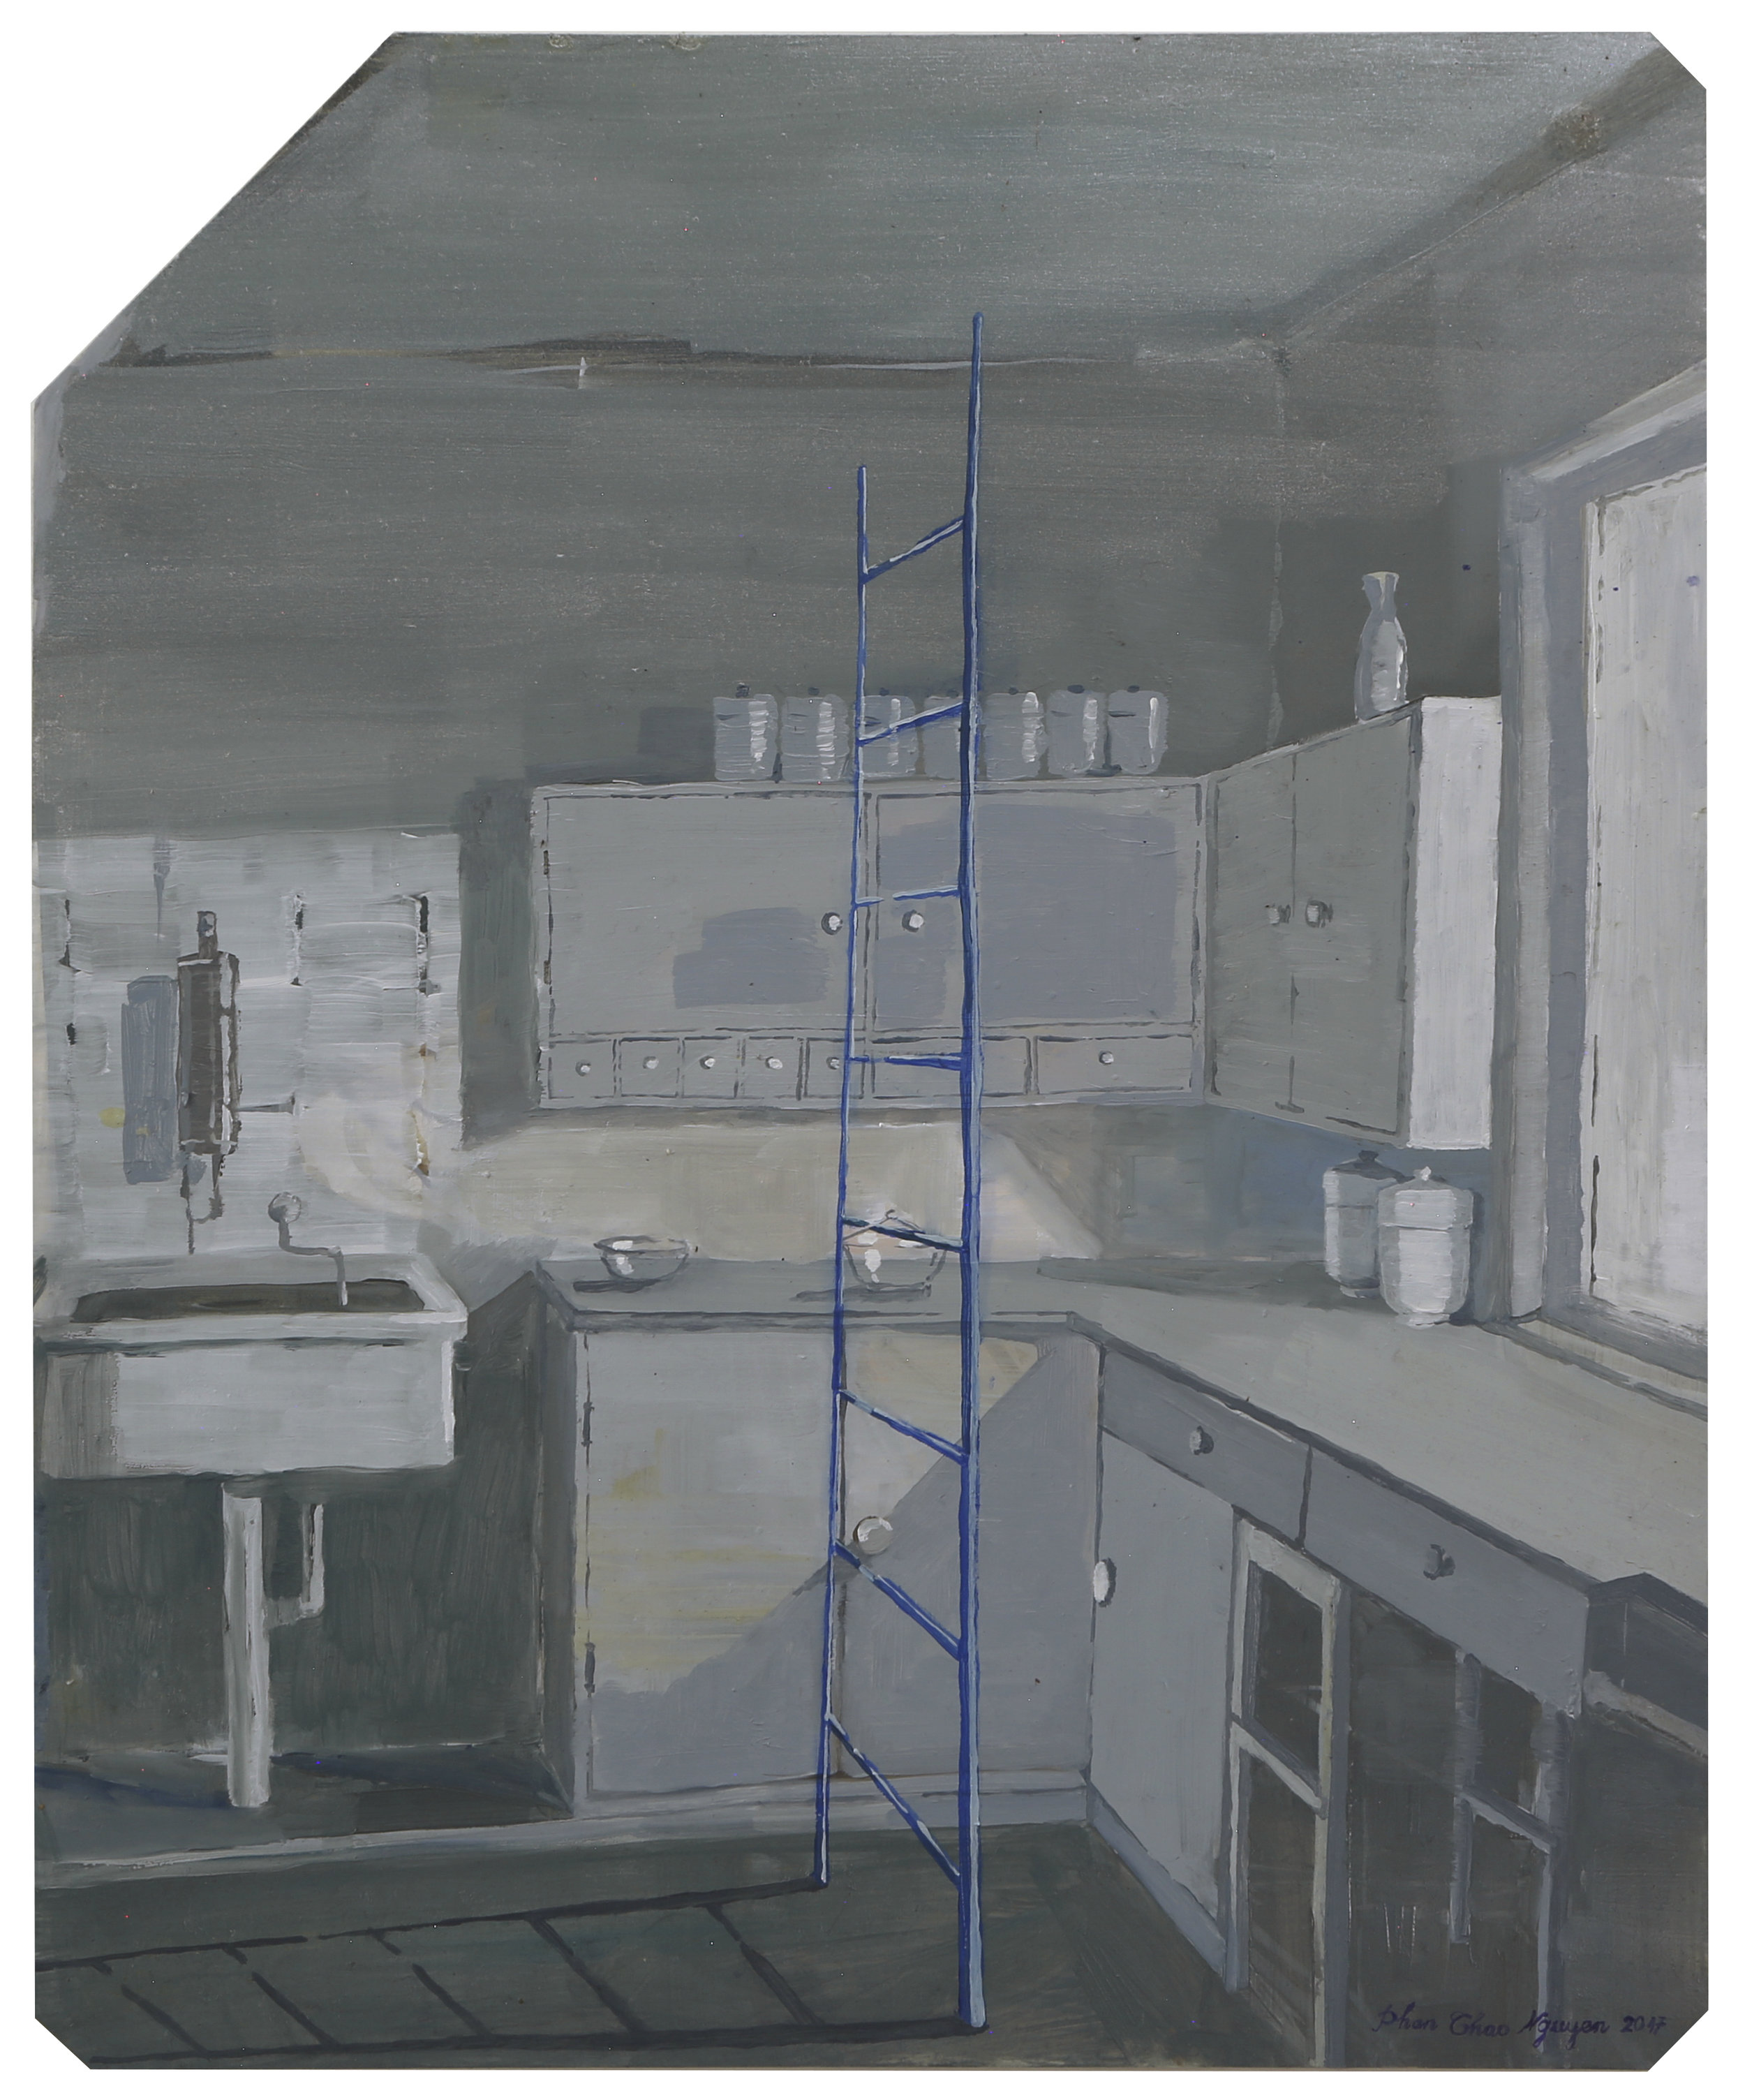 The Bauhaus Kitchen  2017  Oil on x-ray film backing  Framed: 53 x 45cm each (irregular); unique, 43 x 35.3cm (without frame)